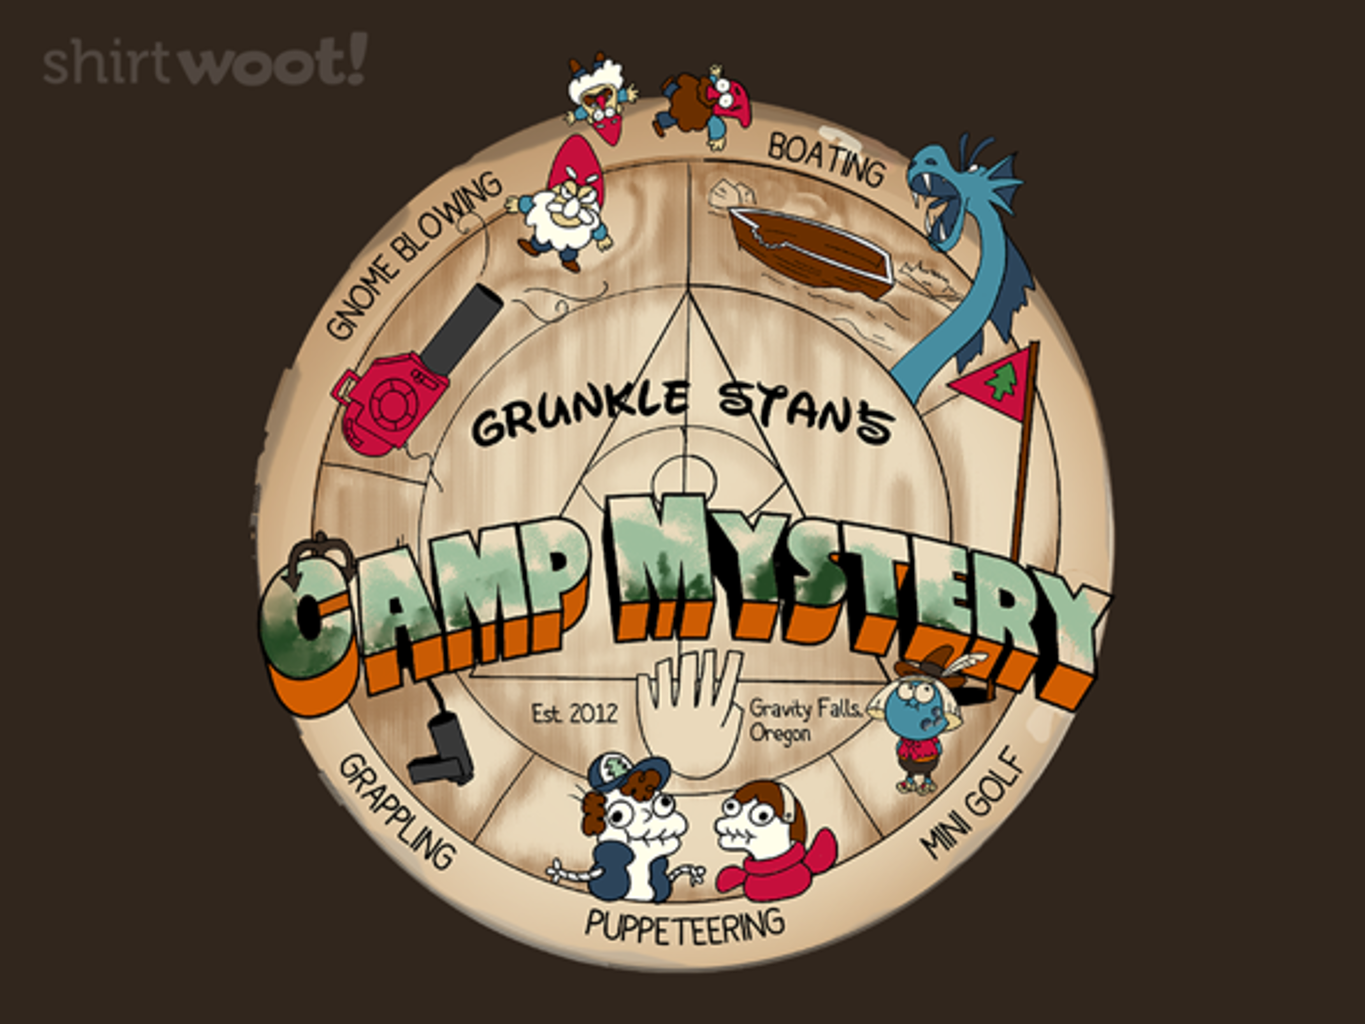 Woot!: Camp Mystery